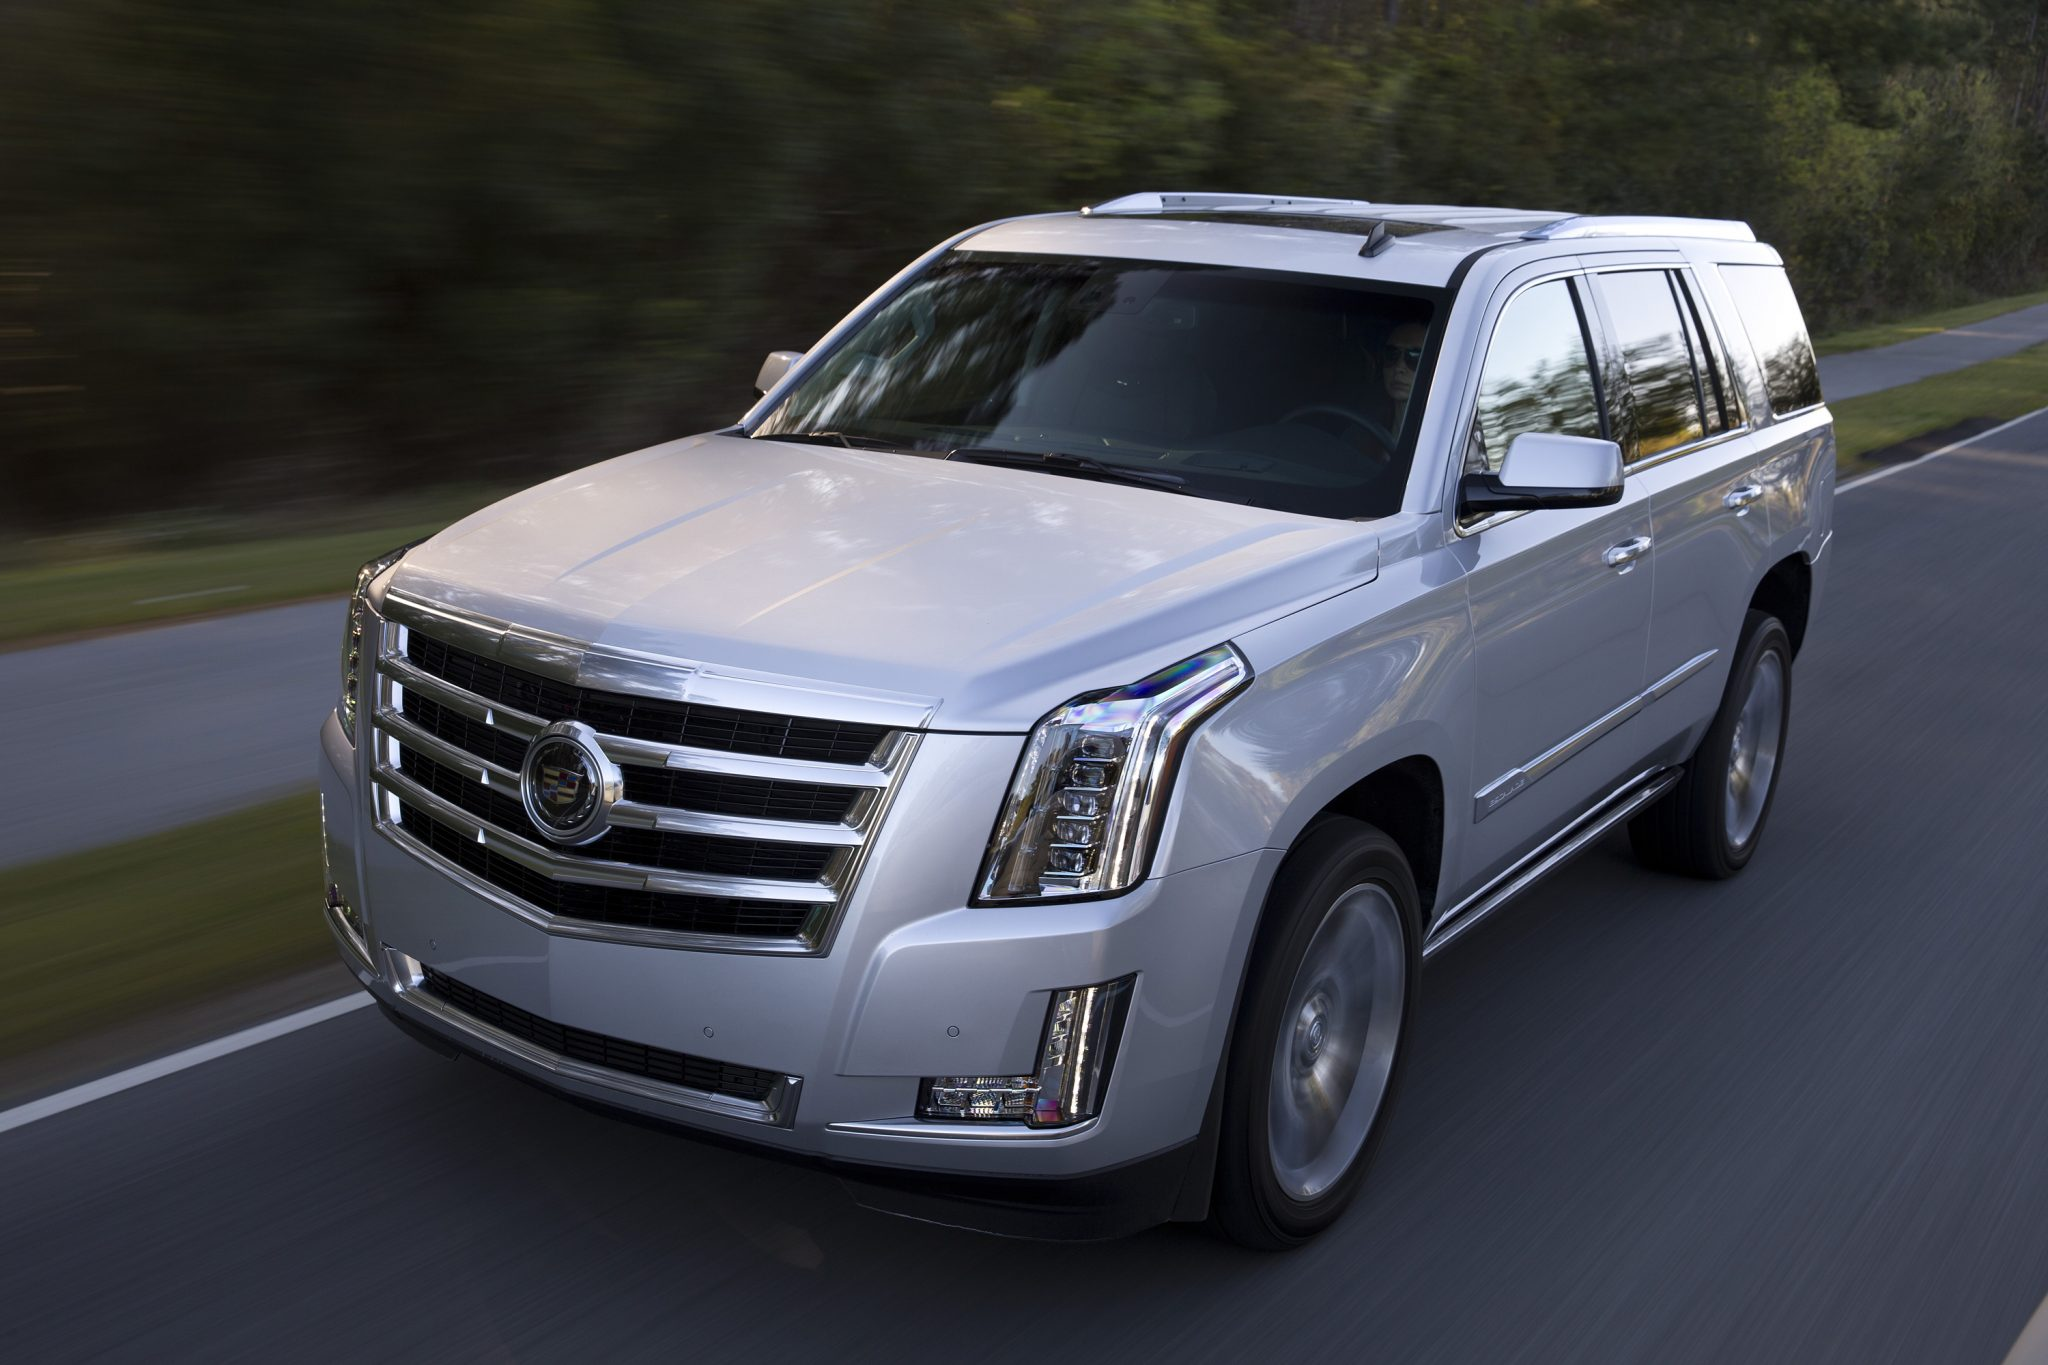 2015 Cadillac Escalade 2014 Luxury Utility Vehicle Of The Year The News Wheel